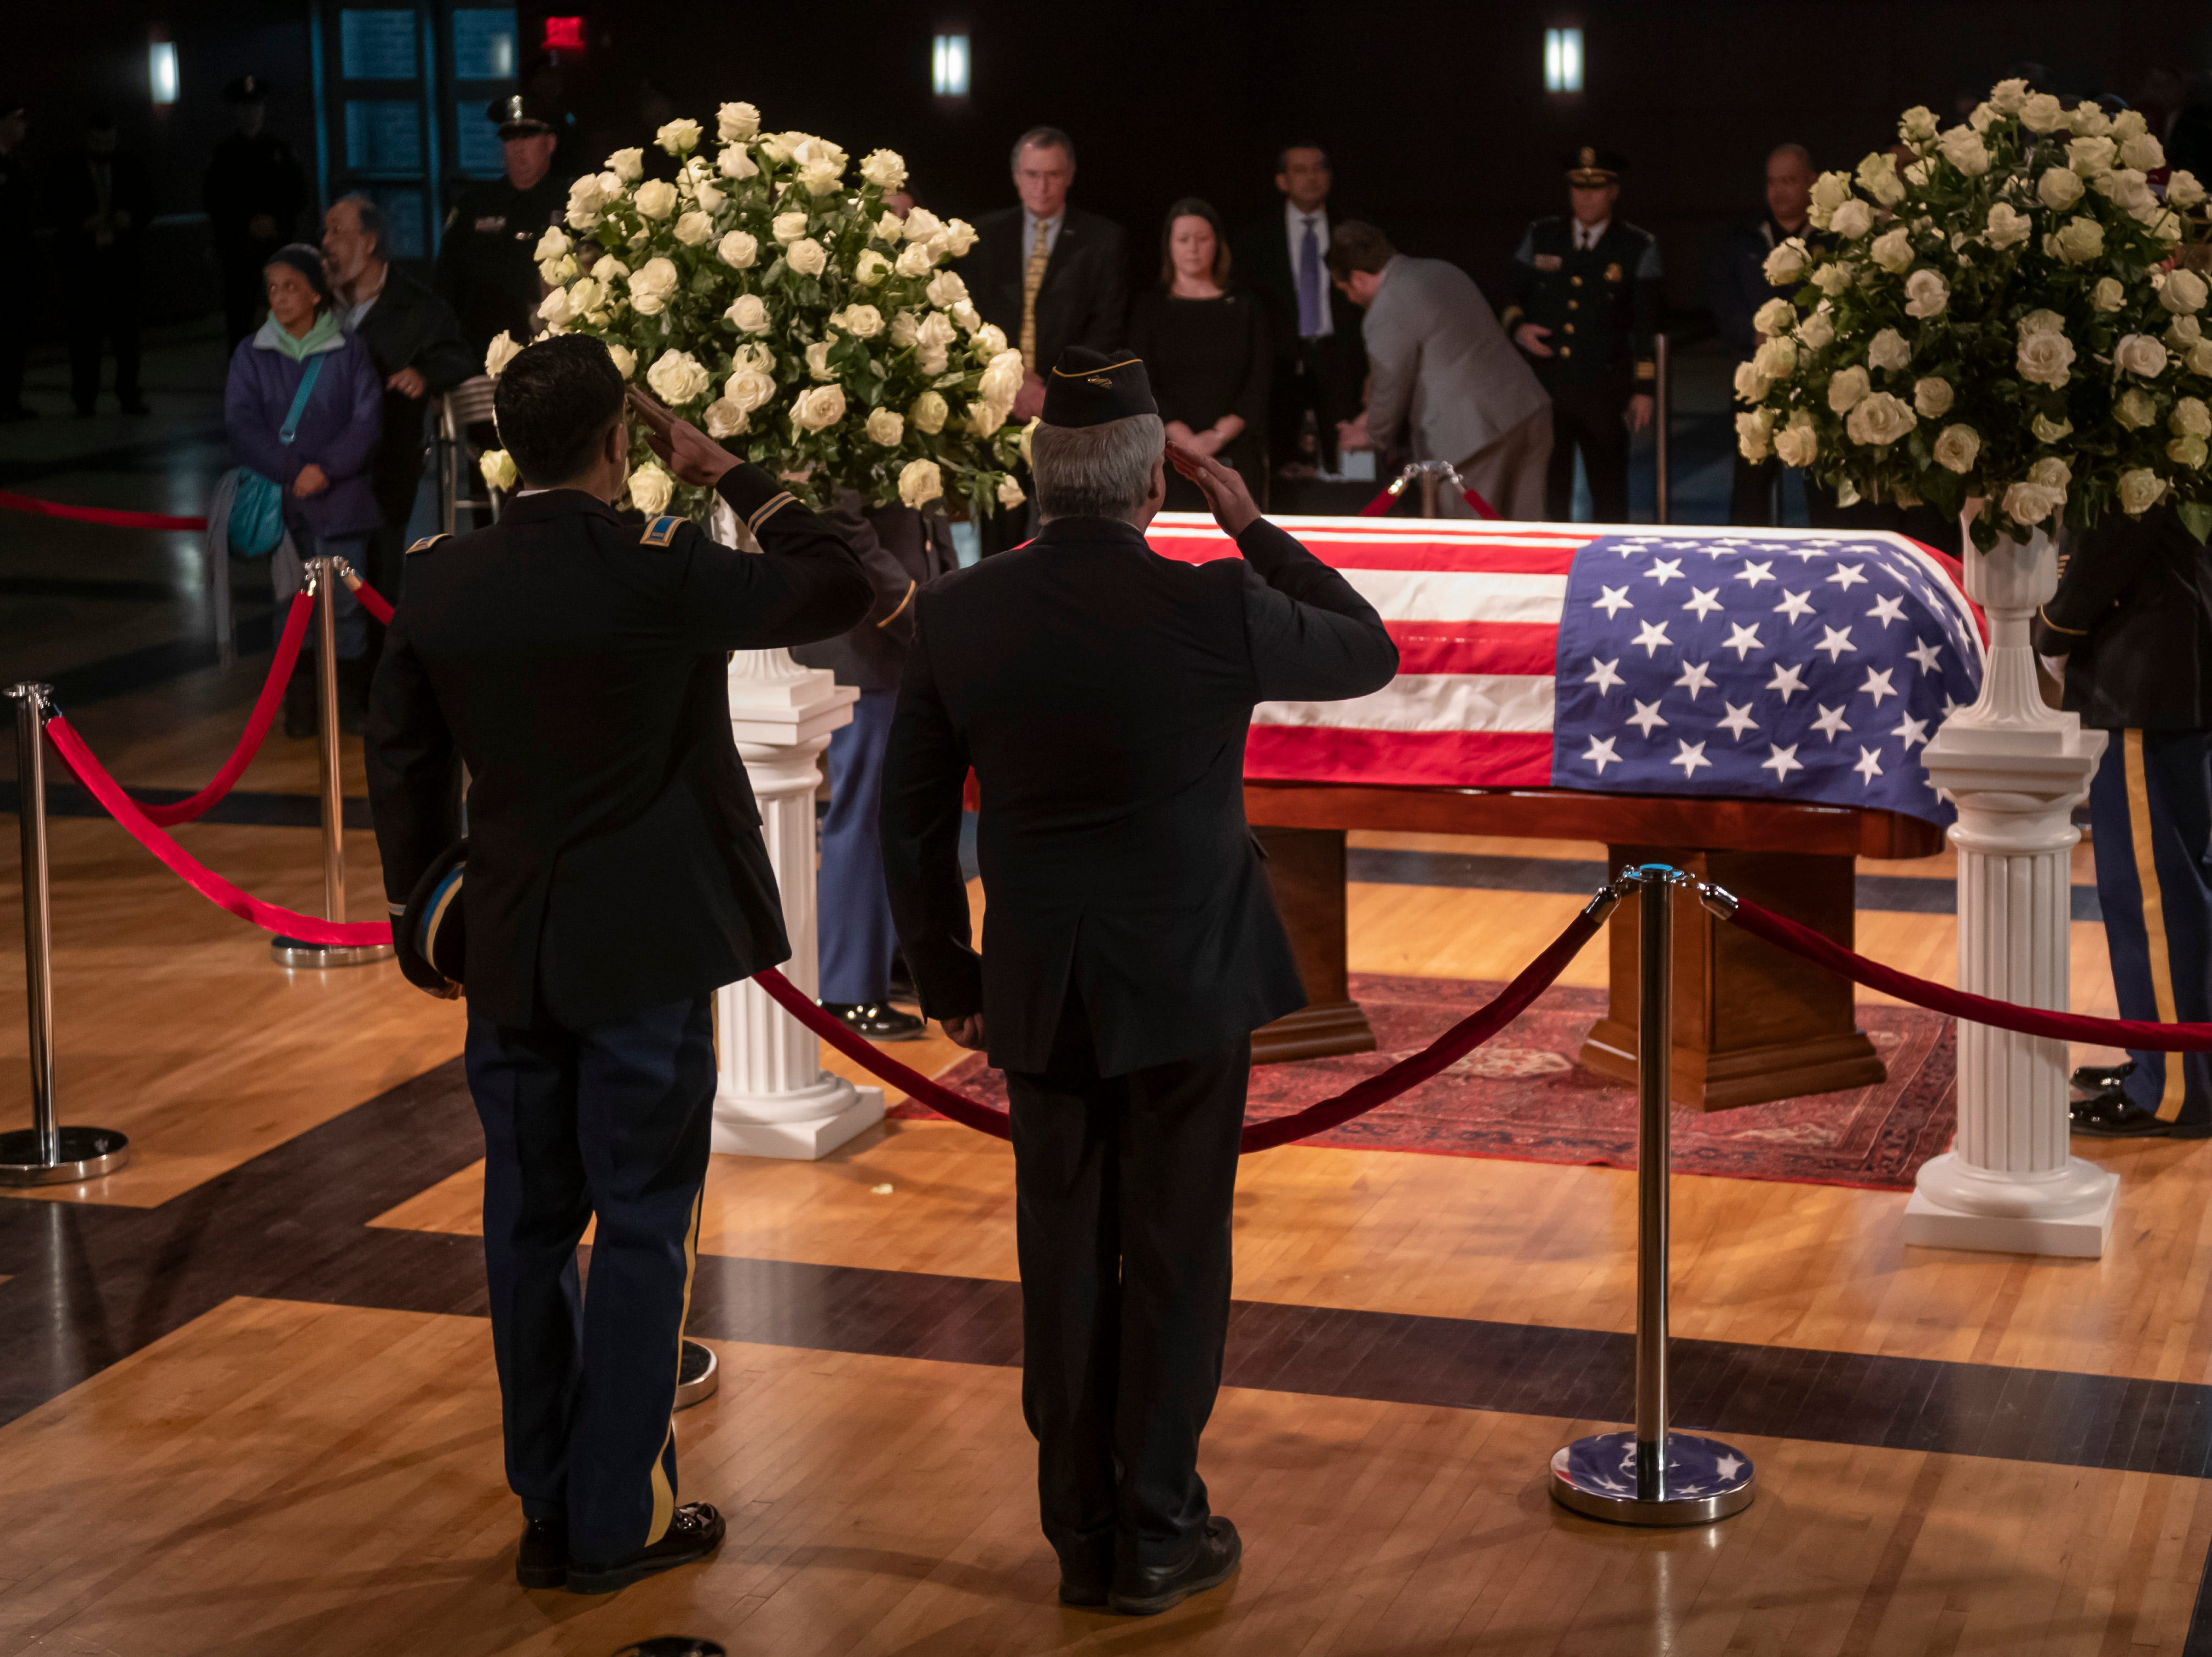 Members of the American Legion Ford Dearborn Post 364 show their respect during a visitation for former U.S. Rep. John Dingell, held at the Ford Community and Performing Arts Center, in Dearborn, February 11, 2019.